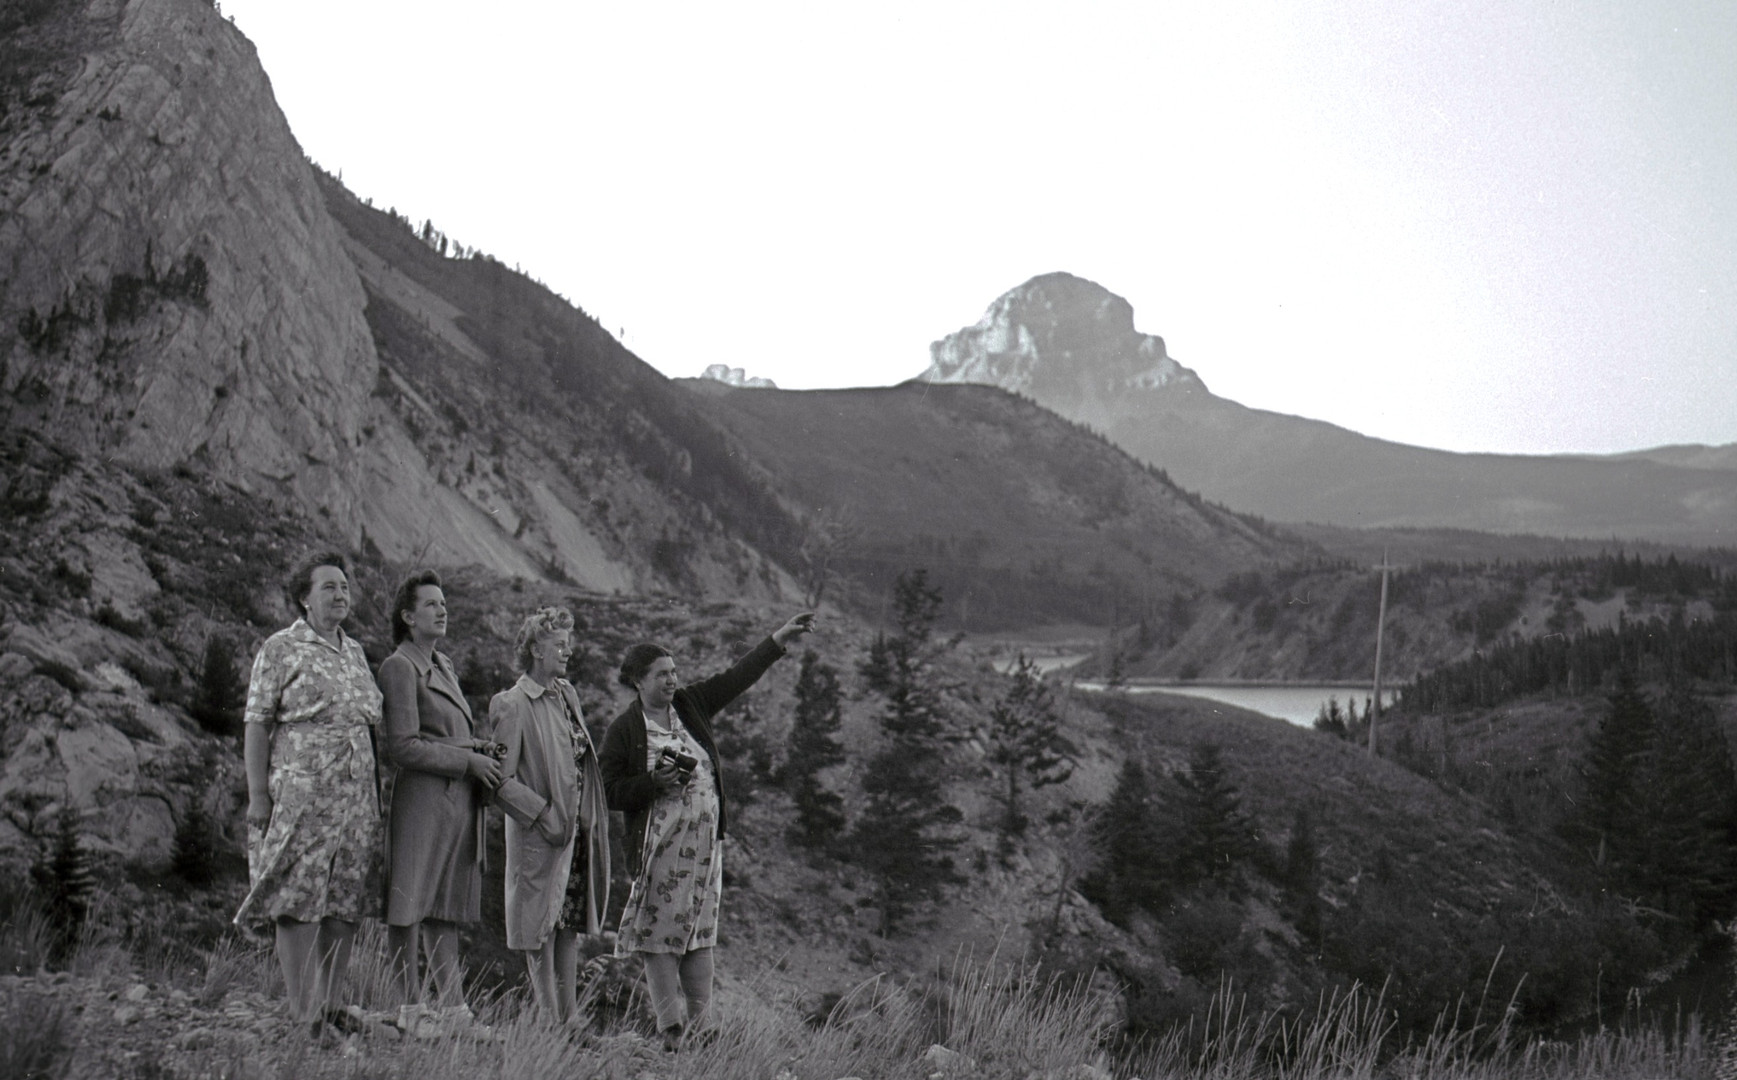 Lena and friends at the West end of Crowsnest Lake - GUSHUL 26, July 1945